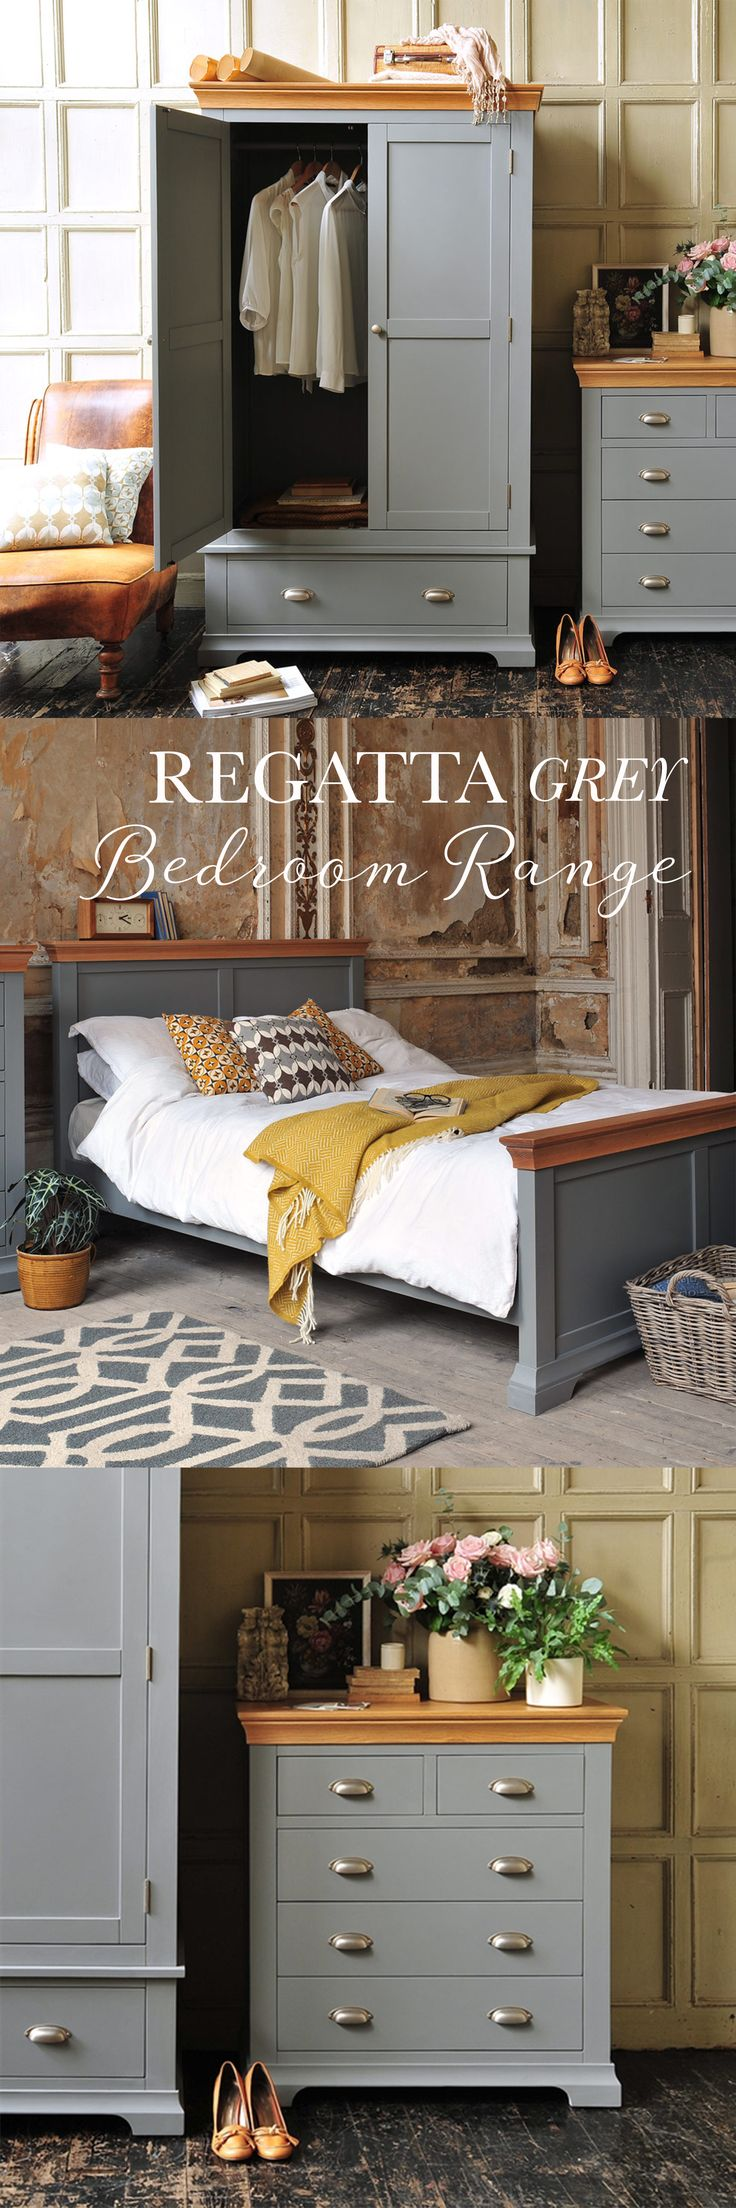 Regatta Grey Painted Bedroom Furniture from The Cotswold Company. Free Delivery and Free Returns on all orders. Free Wood Samples available.